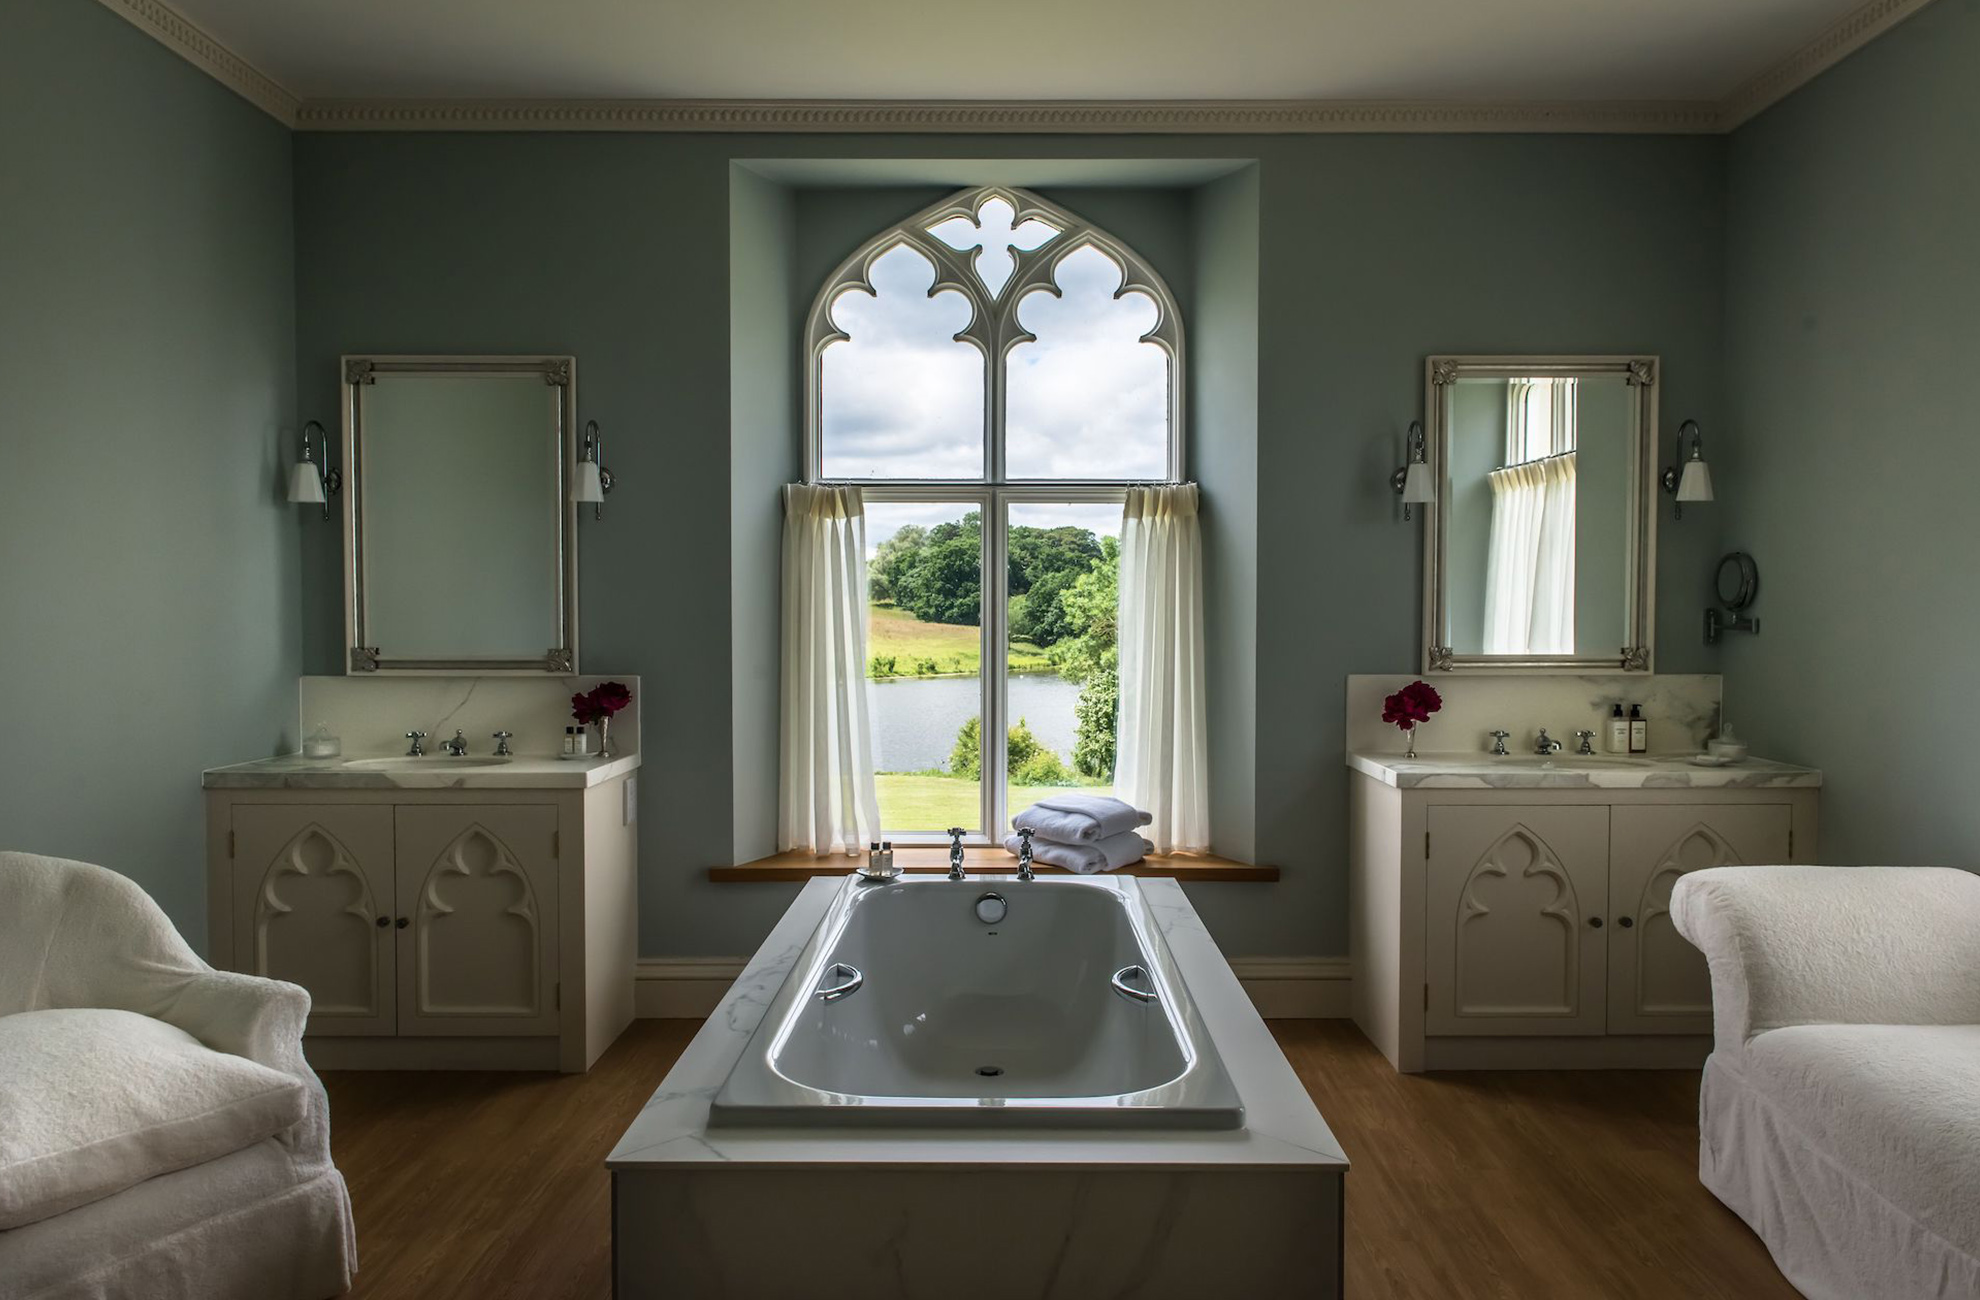 On your overnight stay at Combermere Abbey relax in one of our luxury bathrooms